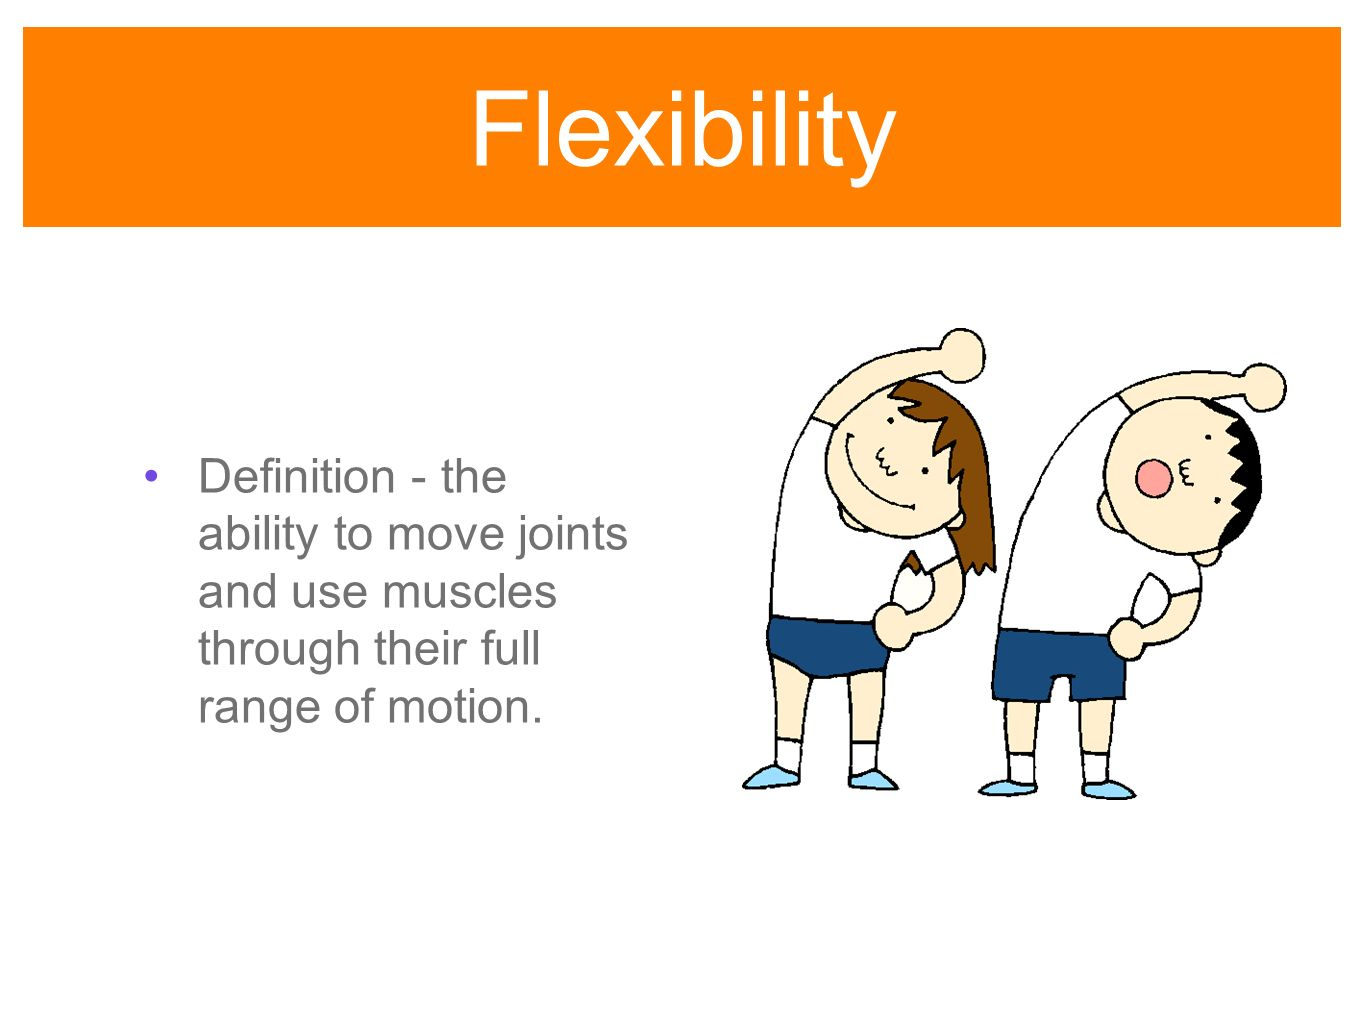 Amazing 10 Flexibility Definition   The Ability To Move Joints And Use Muscles  Through Their Full Range Of Motion.